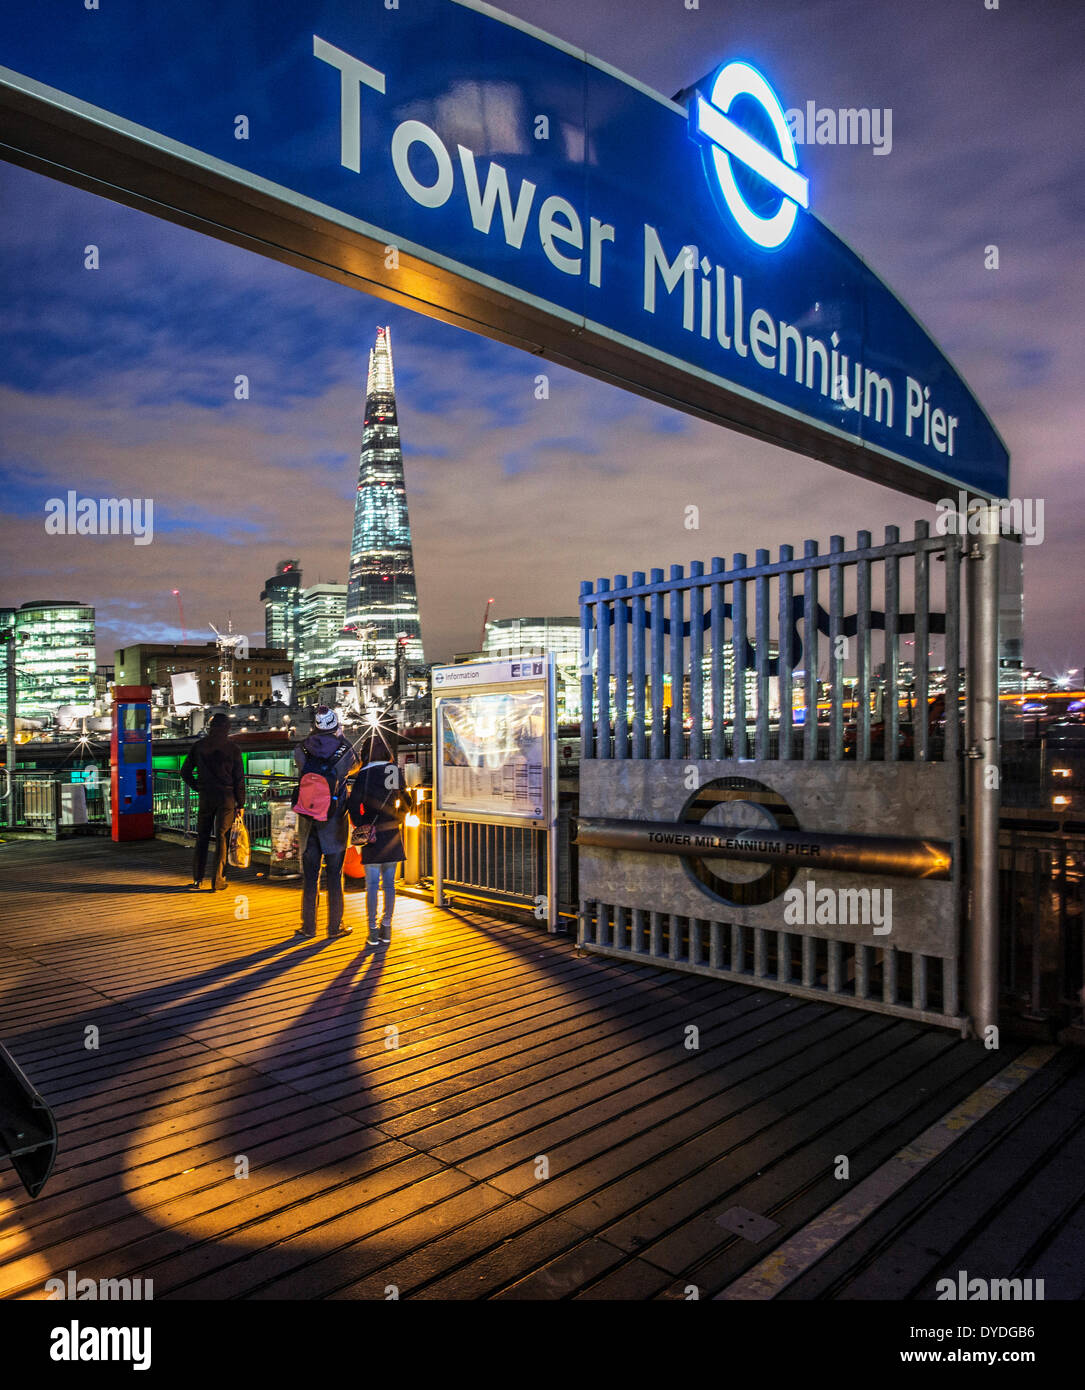 People looking up at The Shard at night from the Tower Millennium Pier. - Stock Image